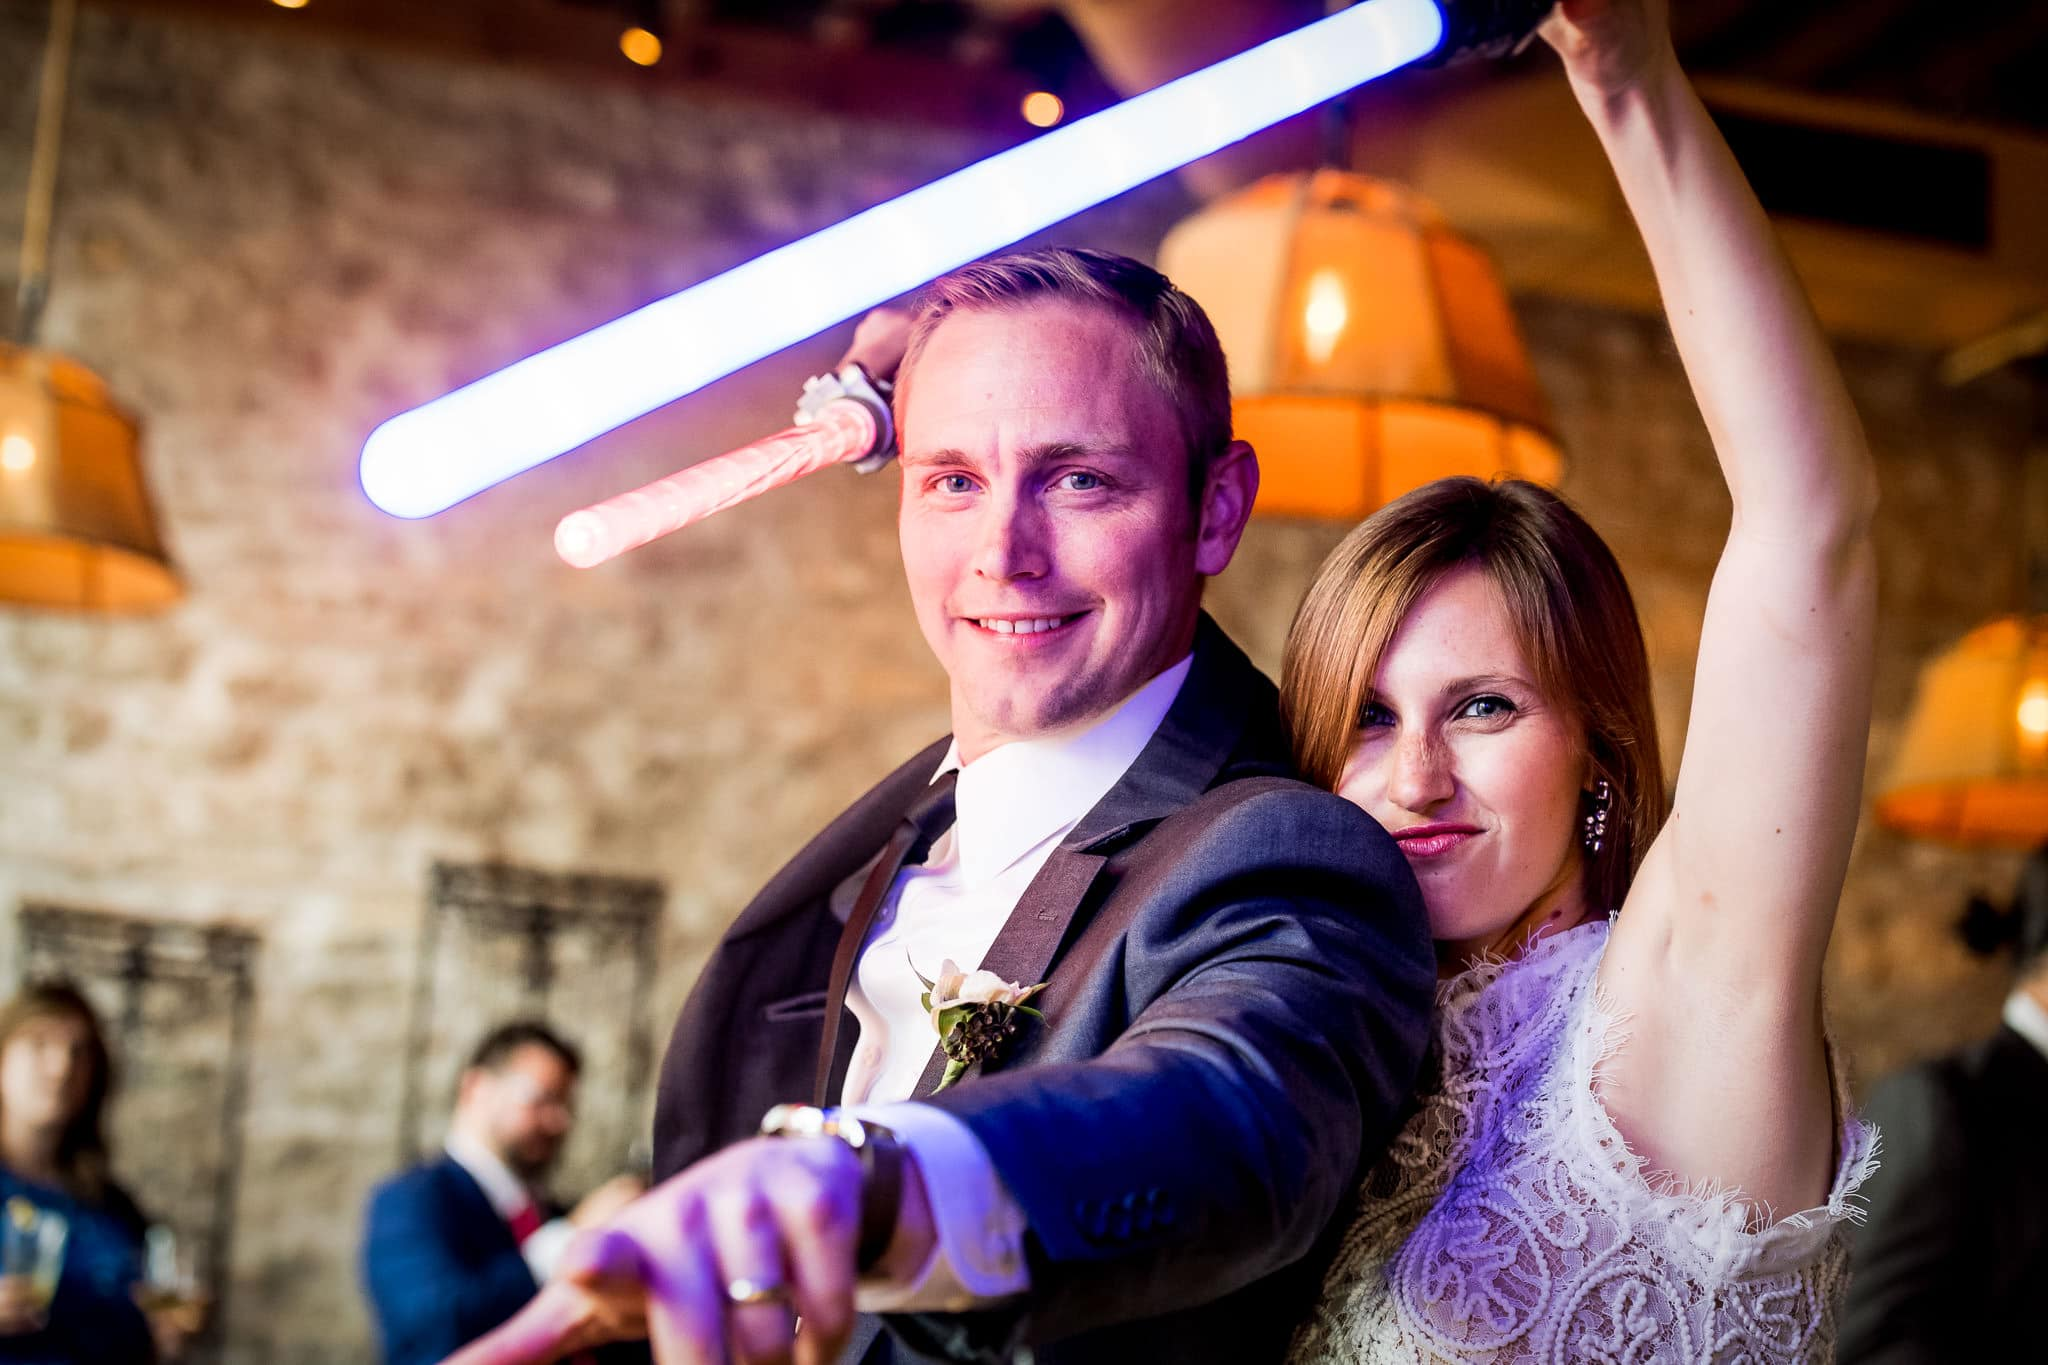 Star Wars Light Saber battle during the wedding reception in the River Room at Aster Cafe 3